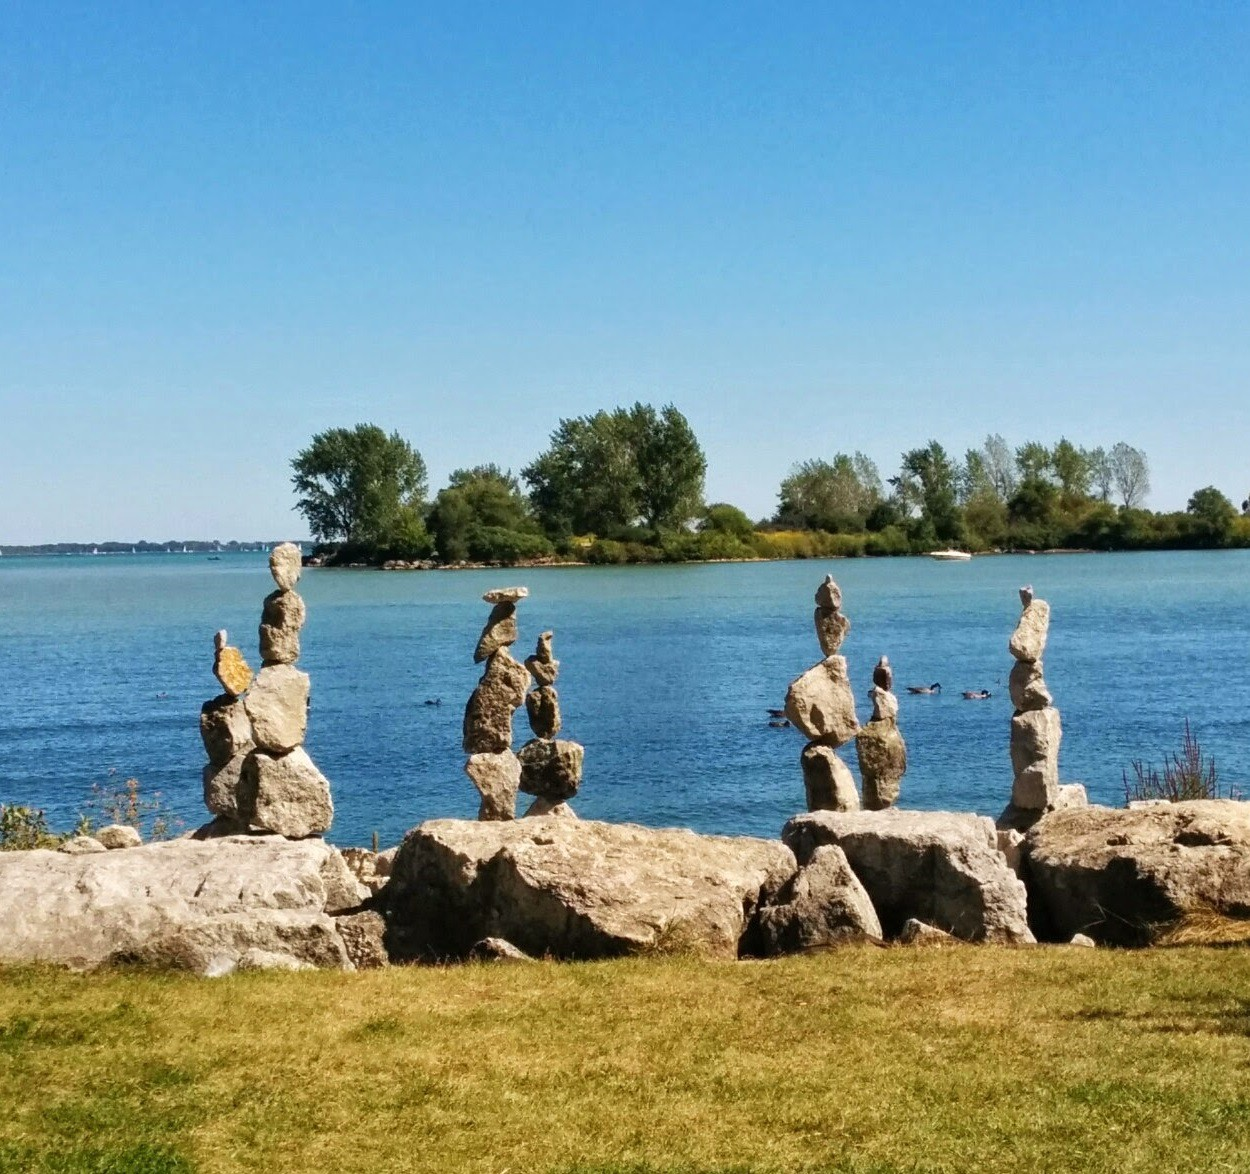 A picture of standing stones known as cairns.